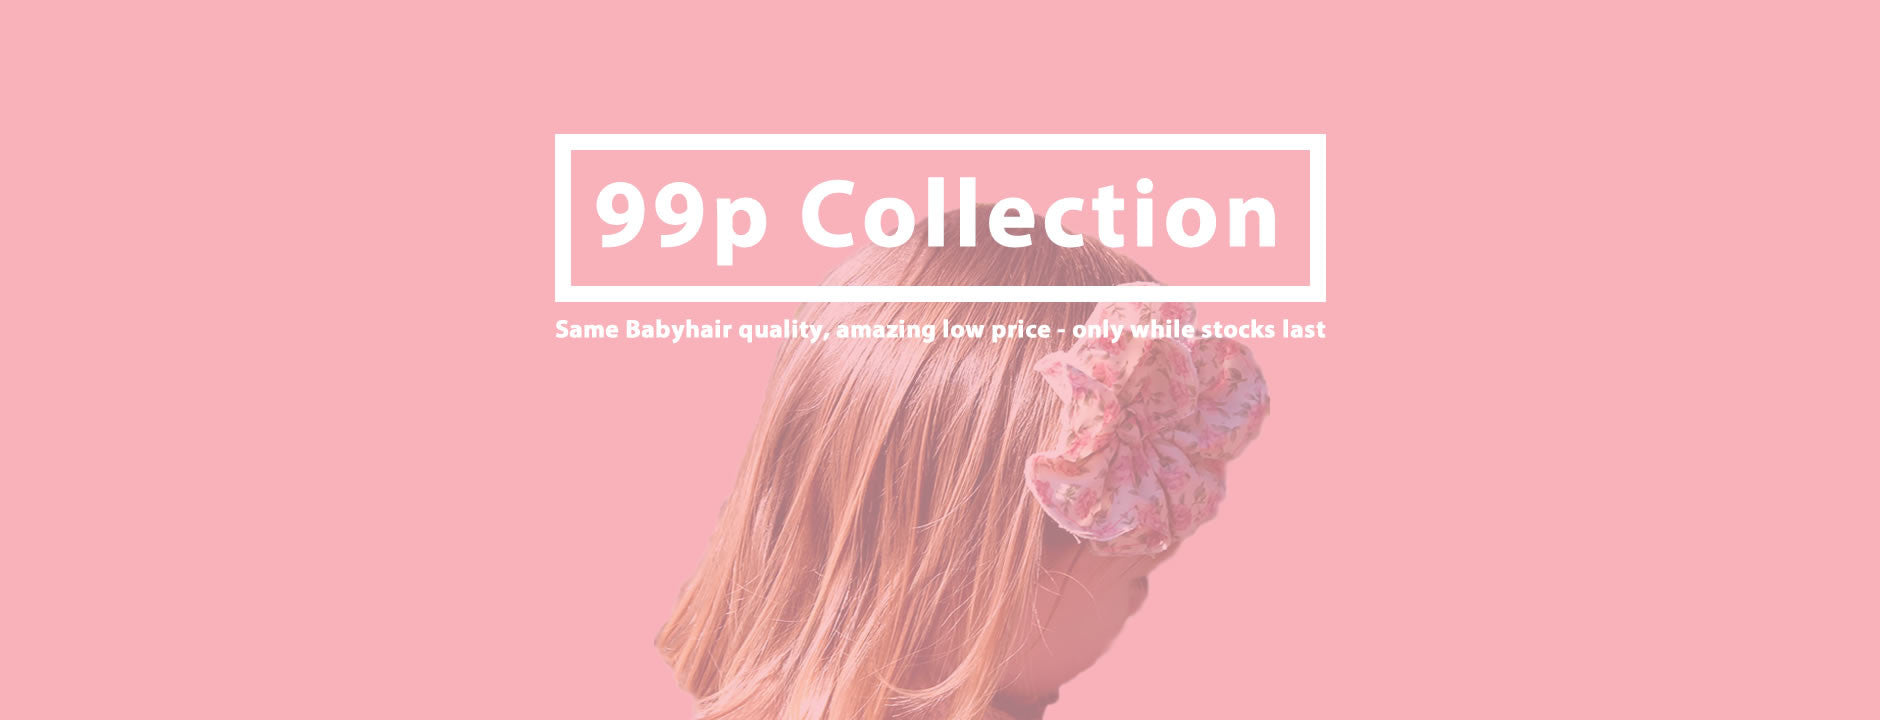 99p baby hair clip collection